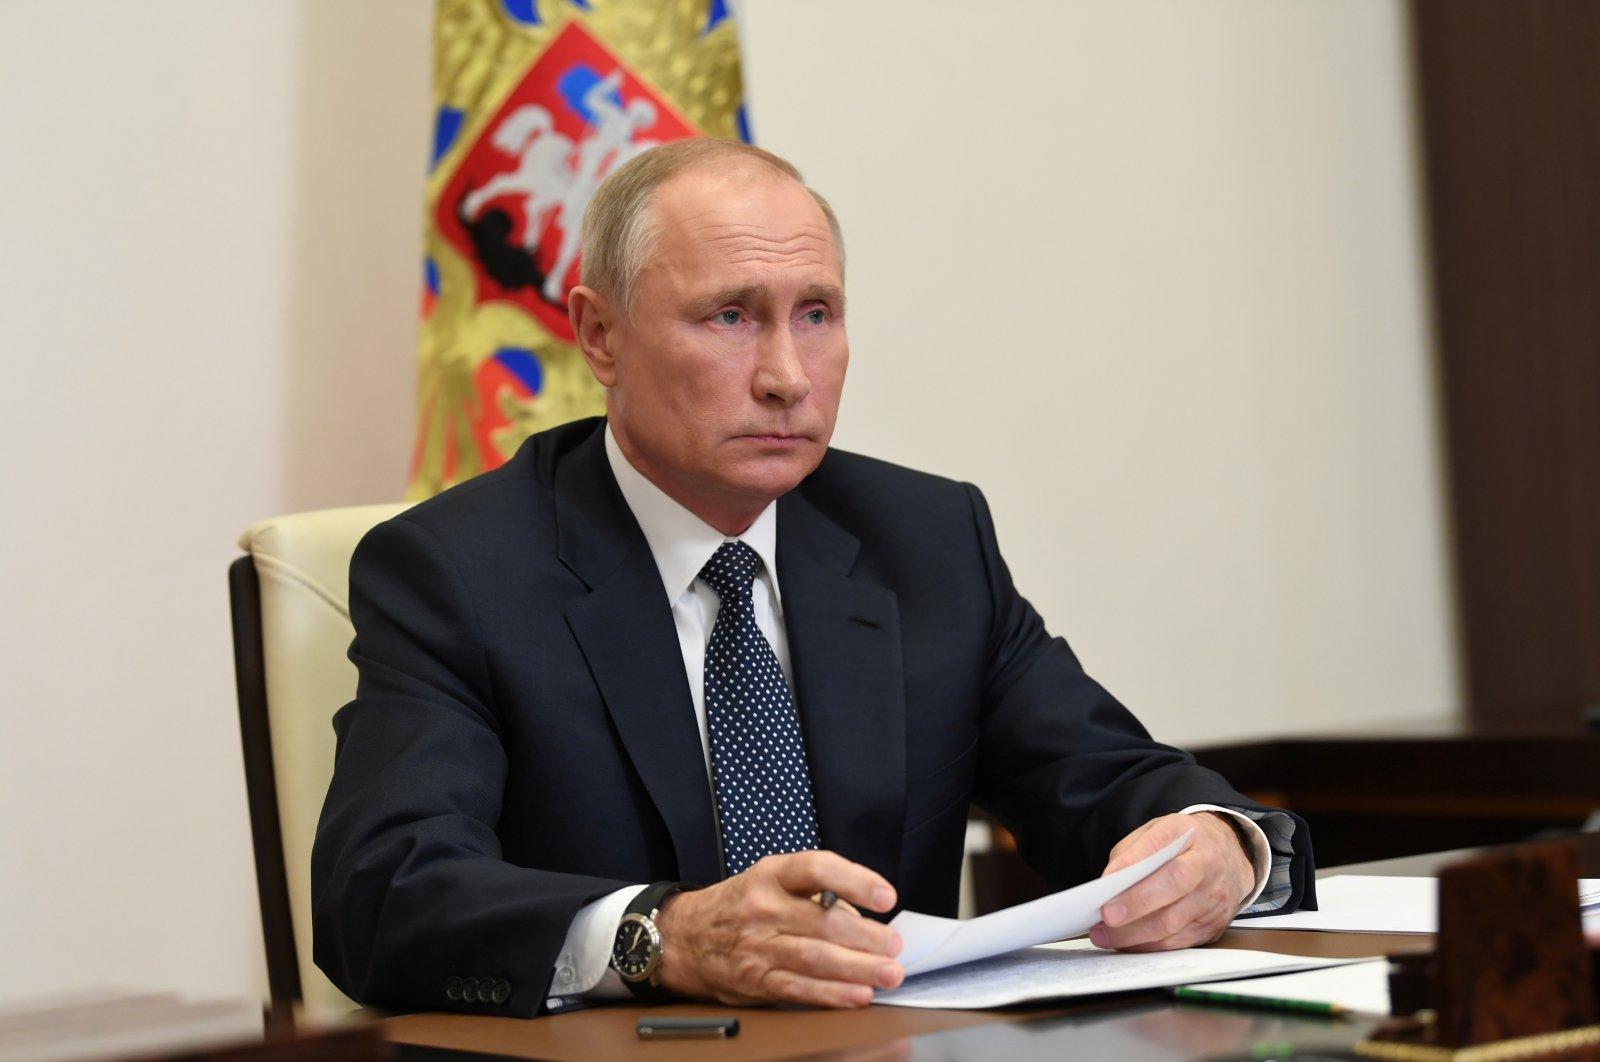 Russian President Vladimir Putin attends a meeting via a video conference call at the Novo-Ogaryovo state residence outside Moscow, Nov. 20, 2020. (Kremlin via Reuters)